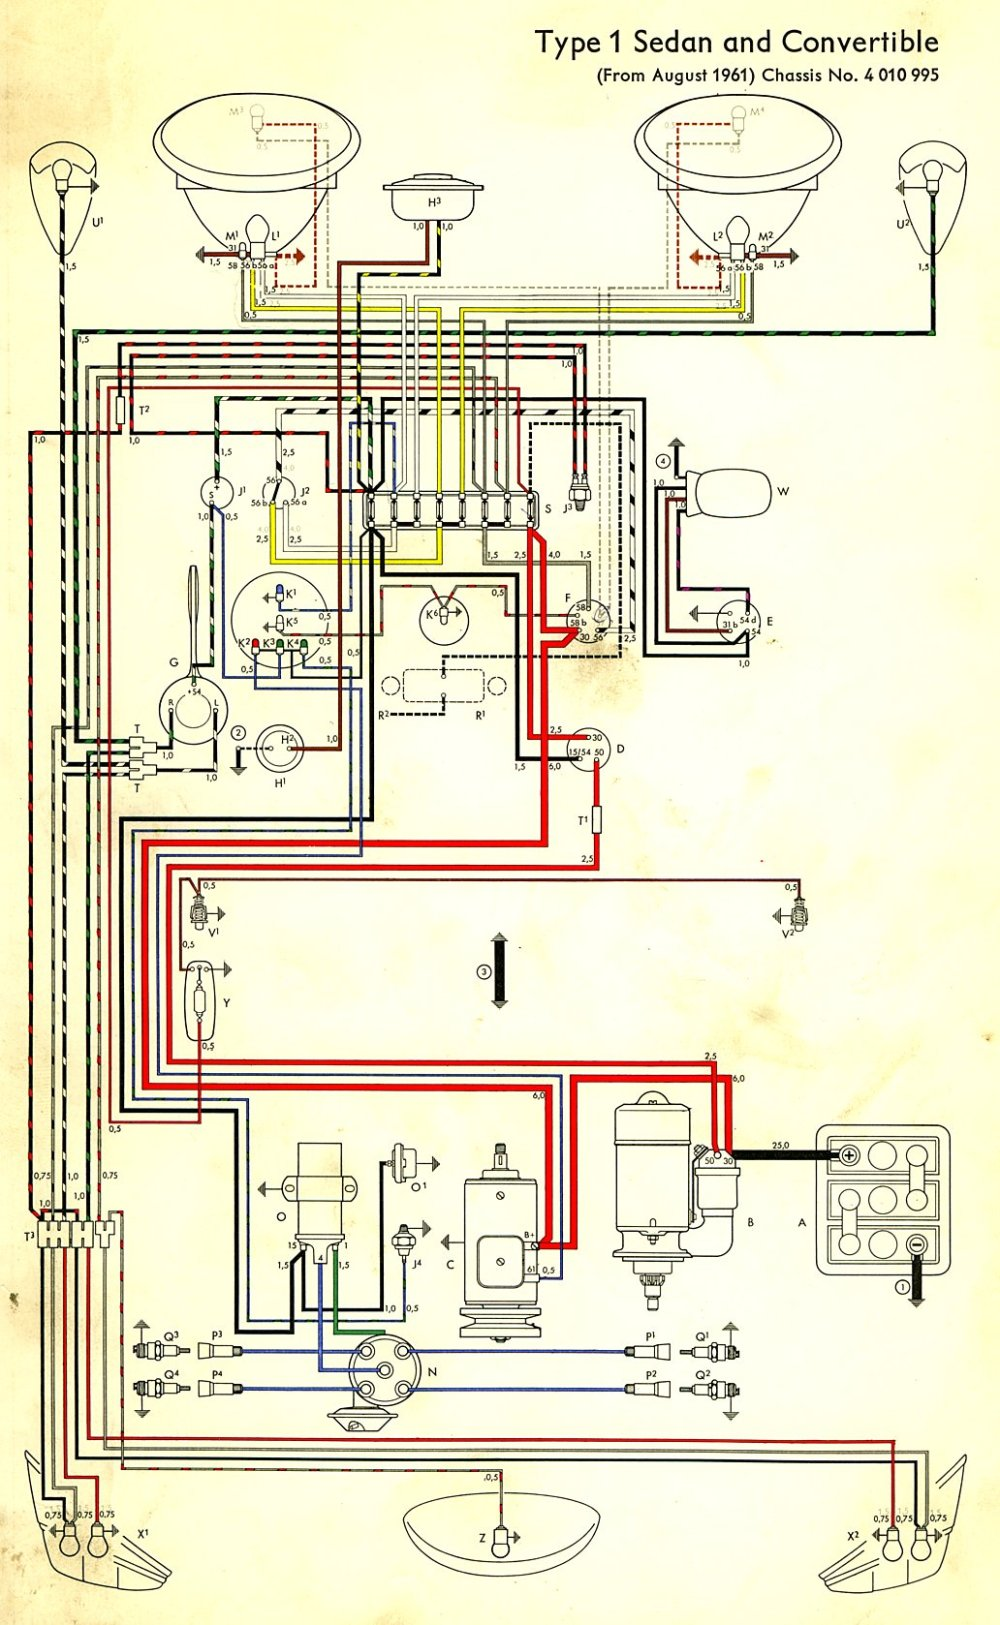 medium resolution of 1965 vw wiring diagram wiring diagram portal 1965 corvair wiring diagram 1965 volkswagen wiring diagram